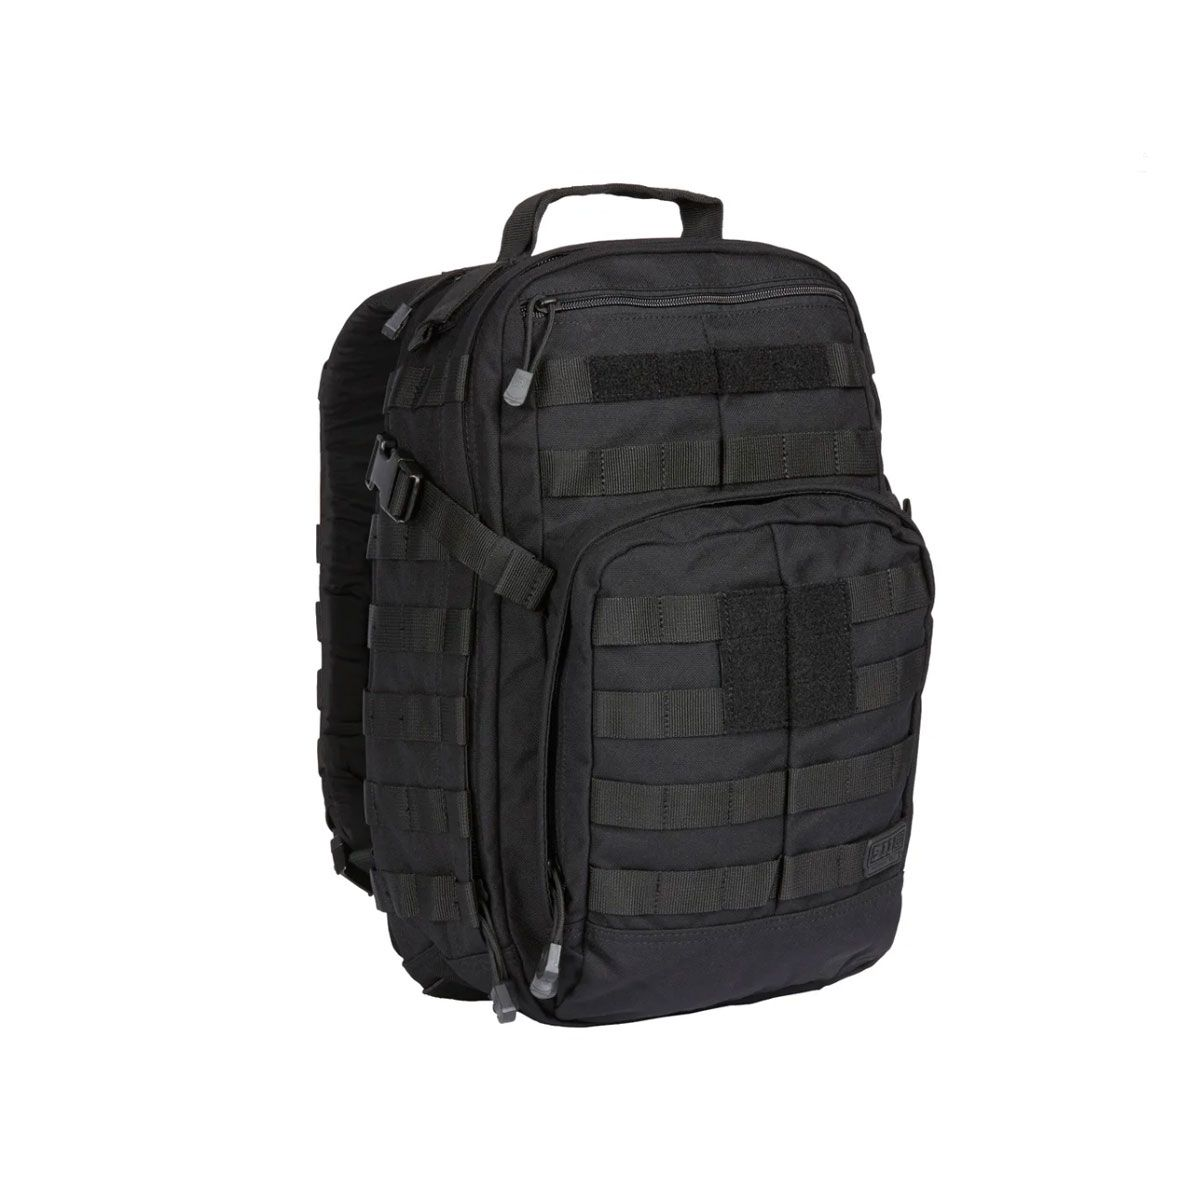 Mochila Tatica 5.11 Tactical Rush 12 BackPack Black